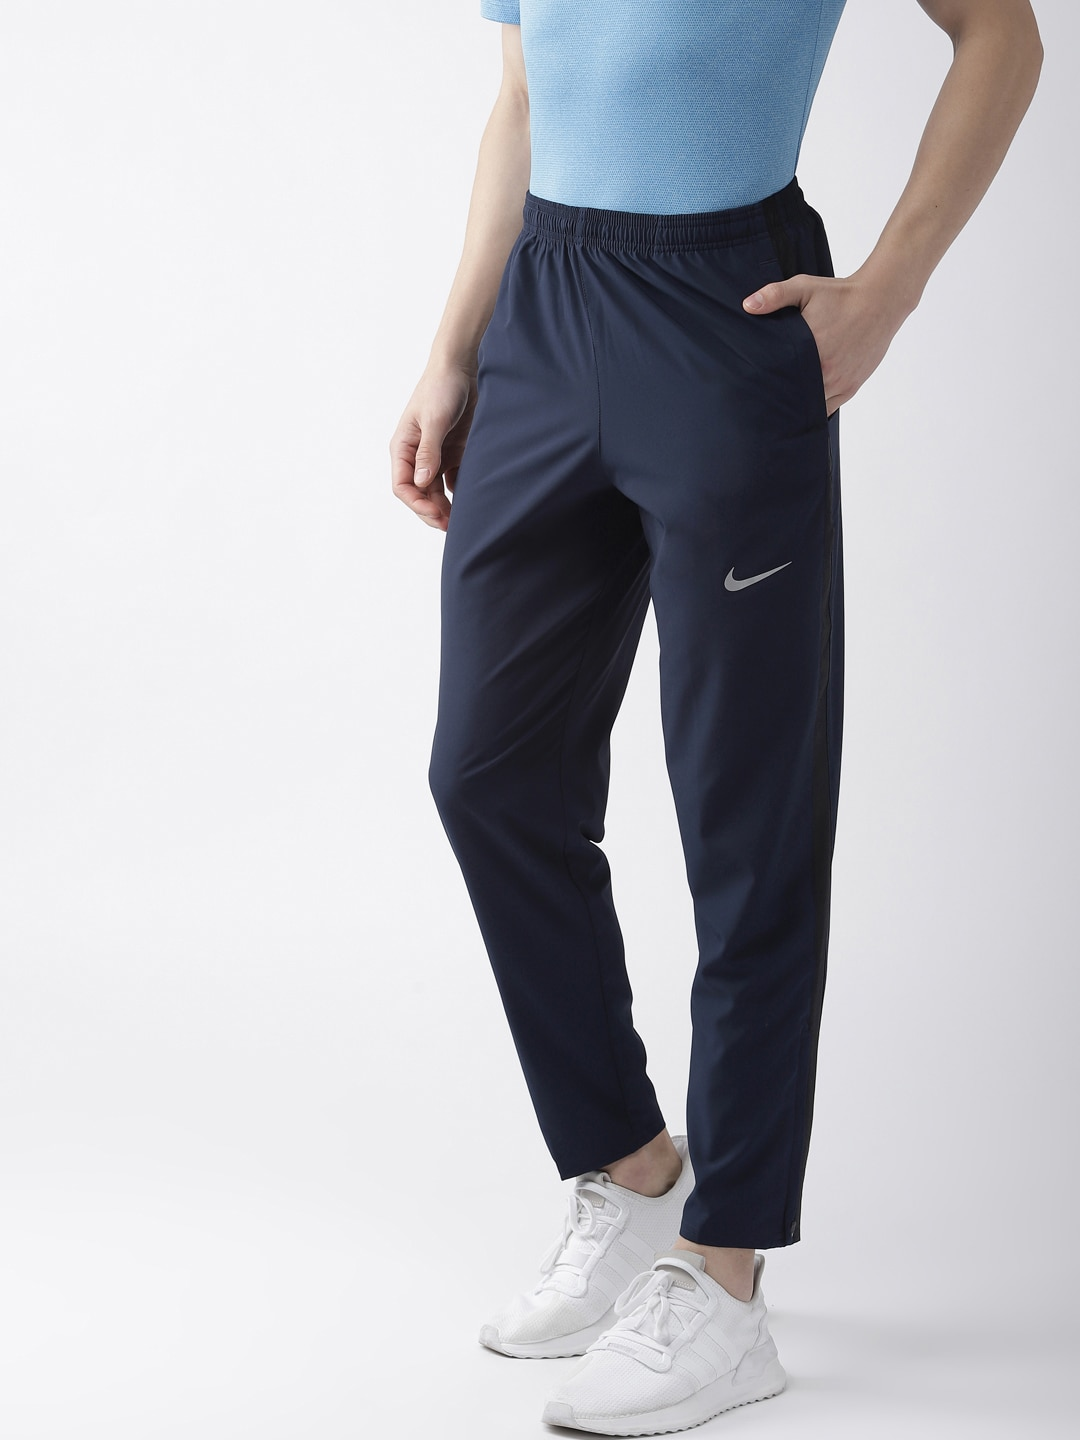 cd1c5a87e69ae Nike As Dri Fit Otc65 Navy Blue Running Track Pants for men price - Best buy  price in India July 2019 detail & trends | PriceHunt